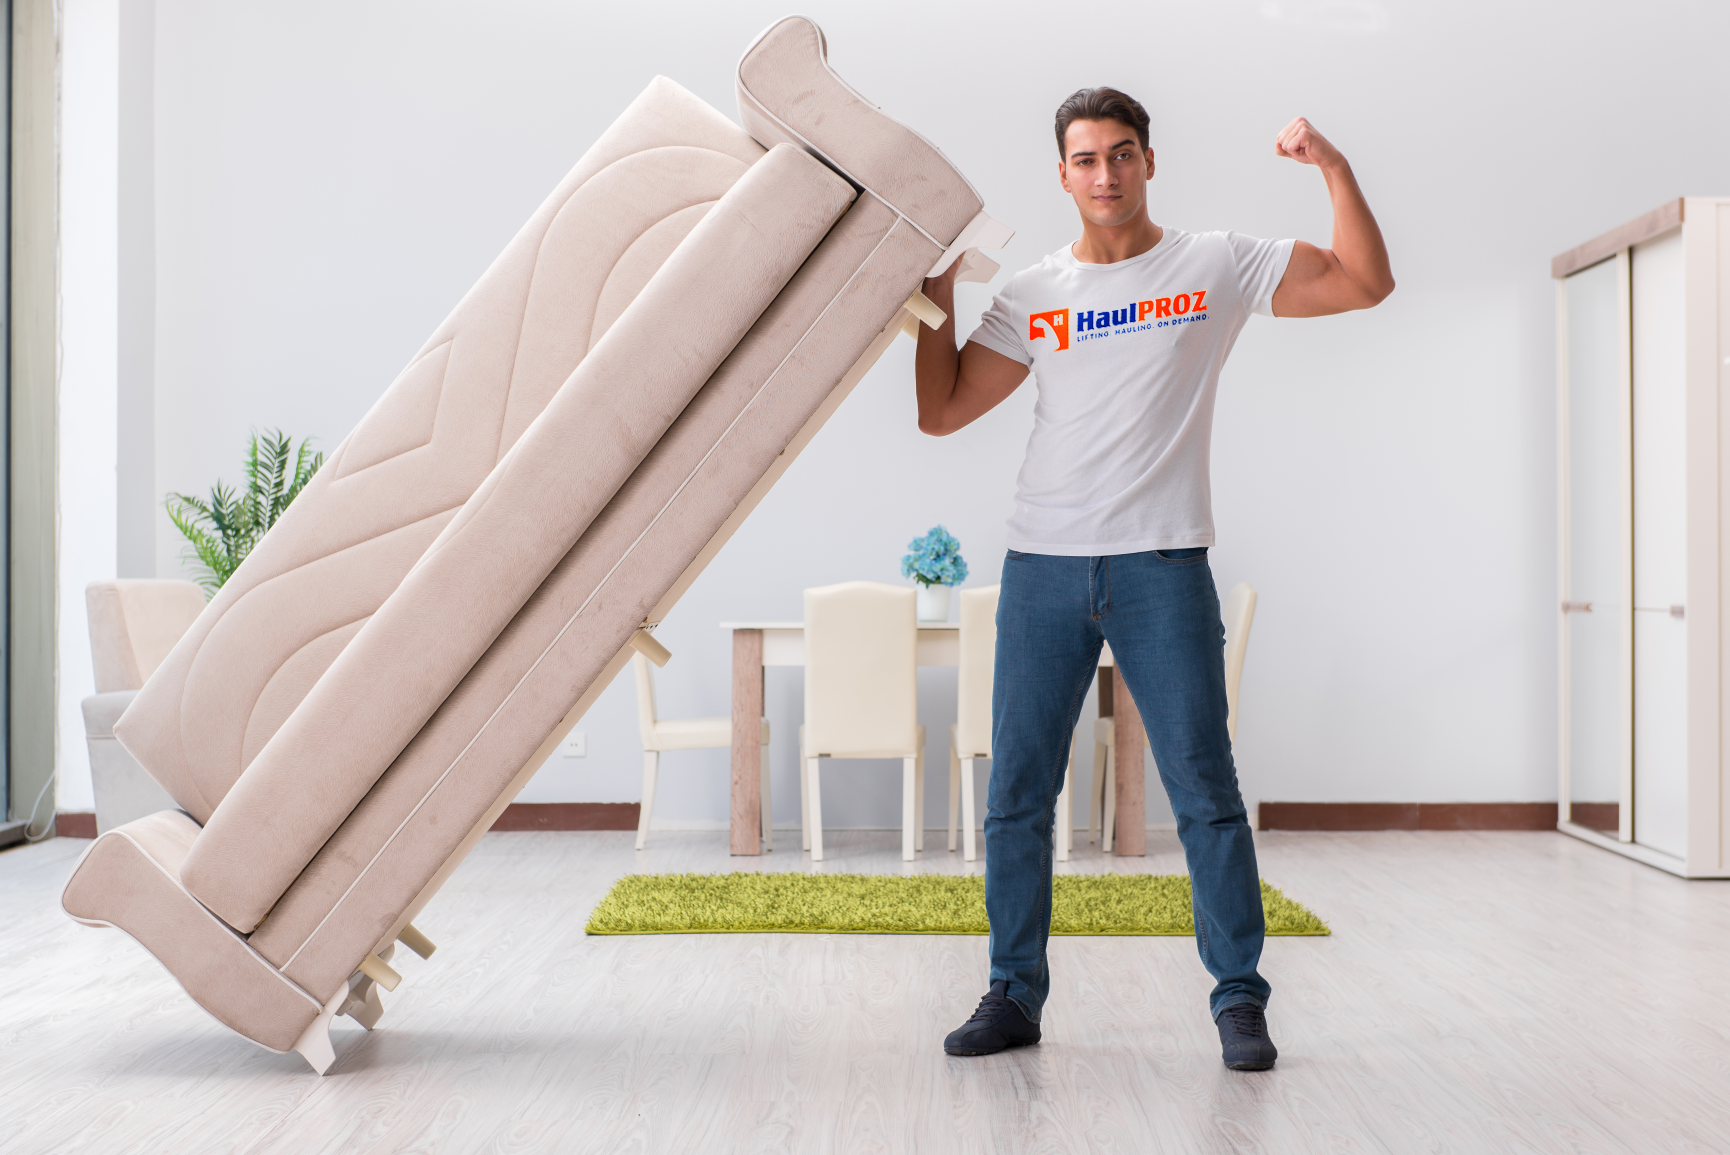 Popularity increases as people find a one-stop junk removal partner in HaulPROZ